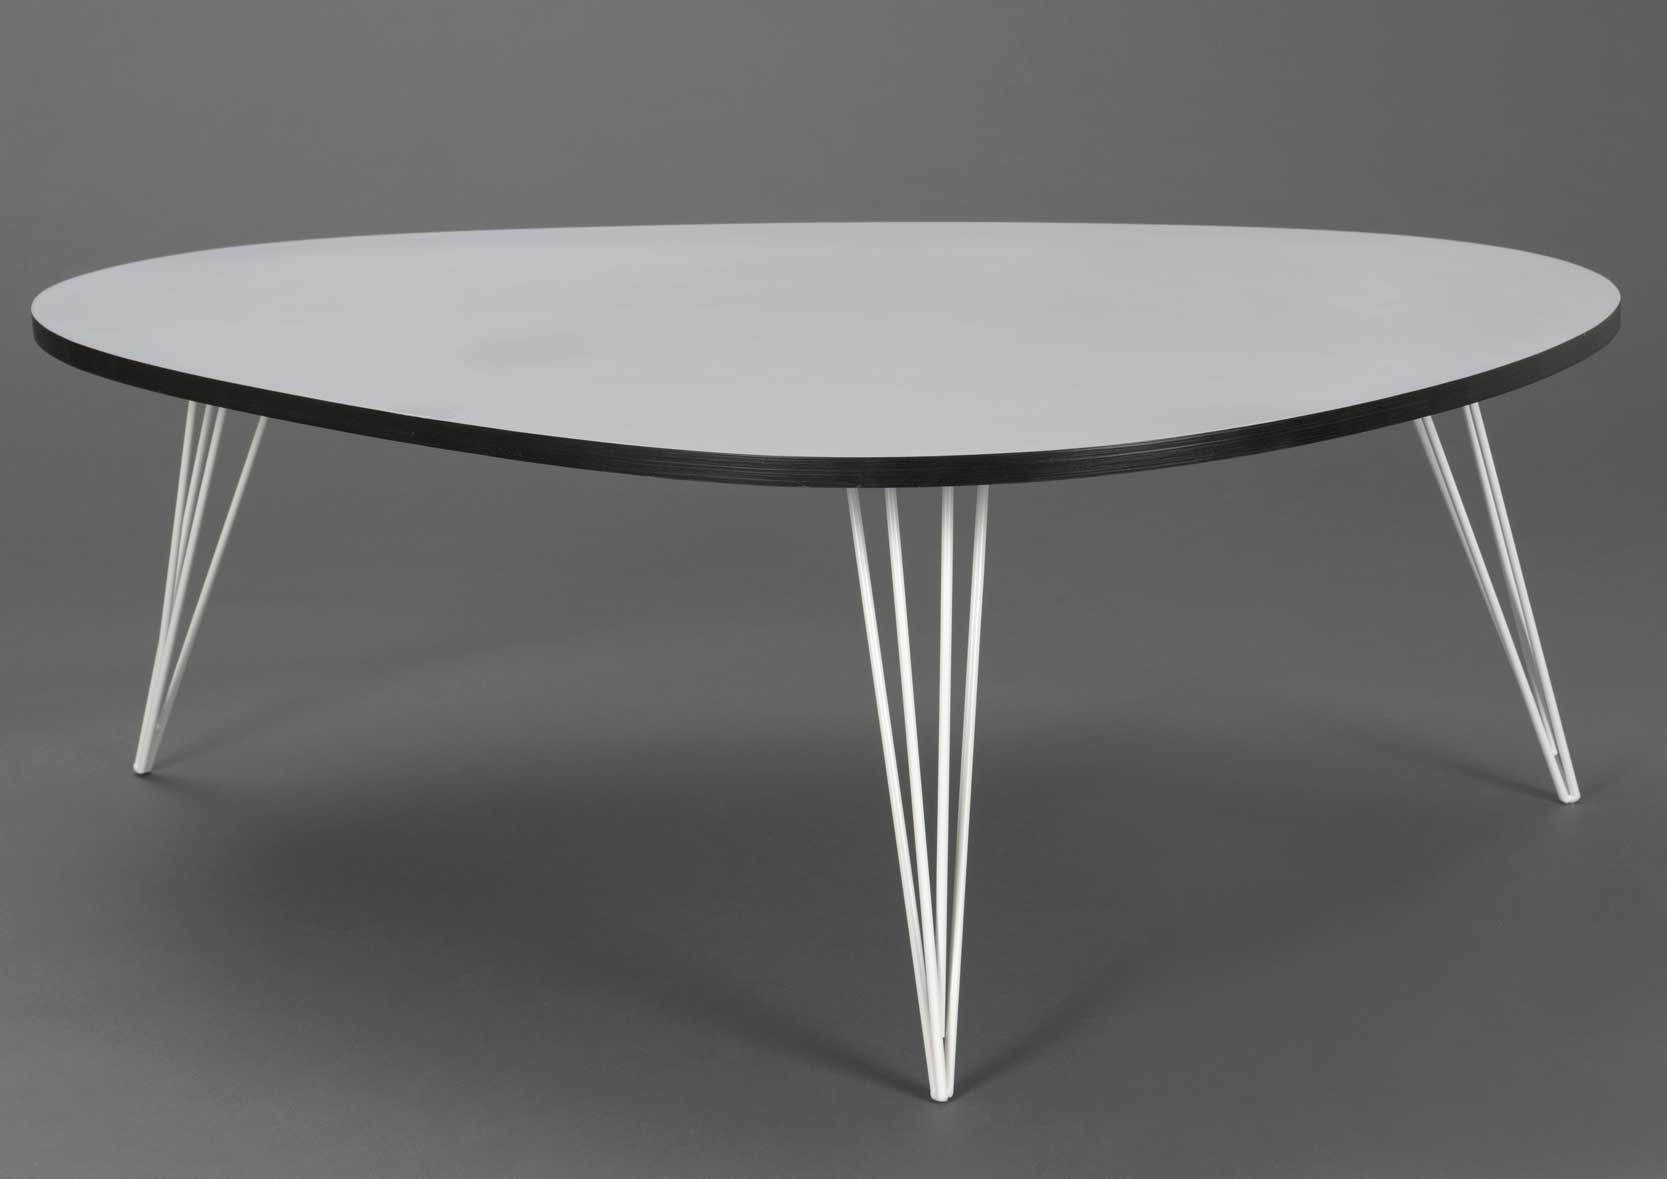 Table basse haricot grise et noire for Table basse haricot